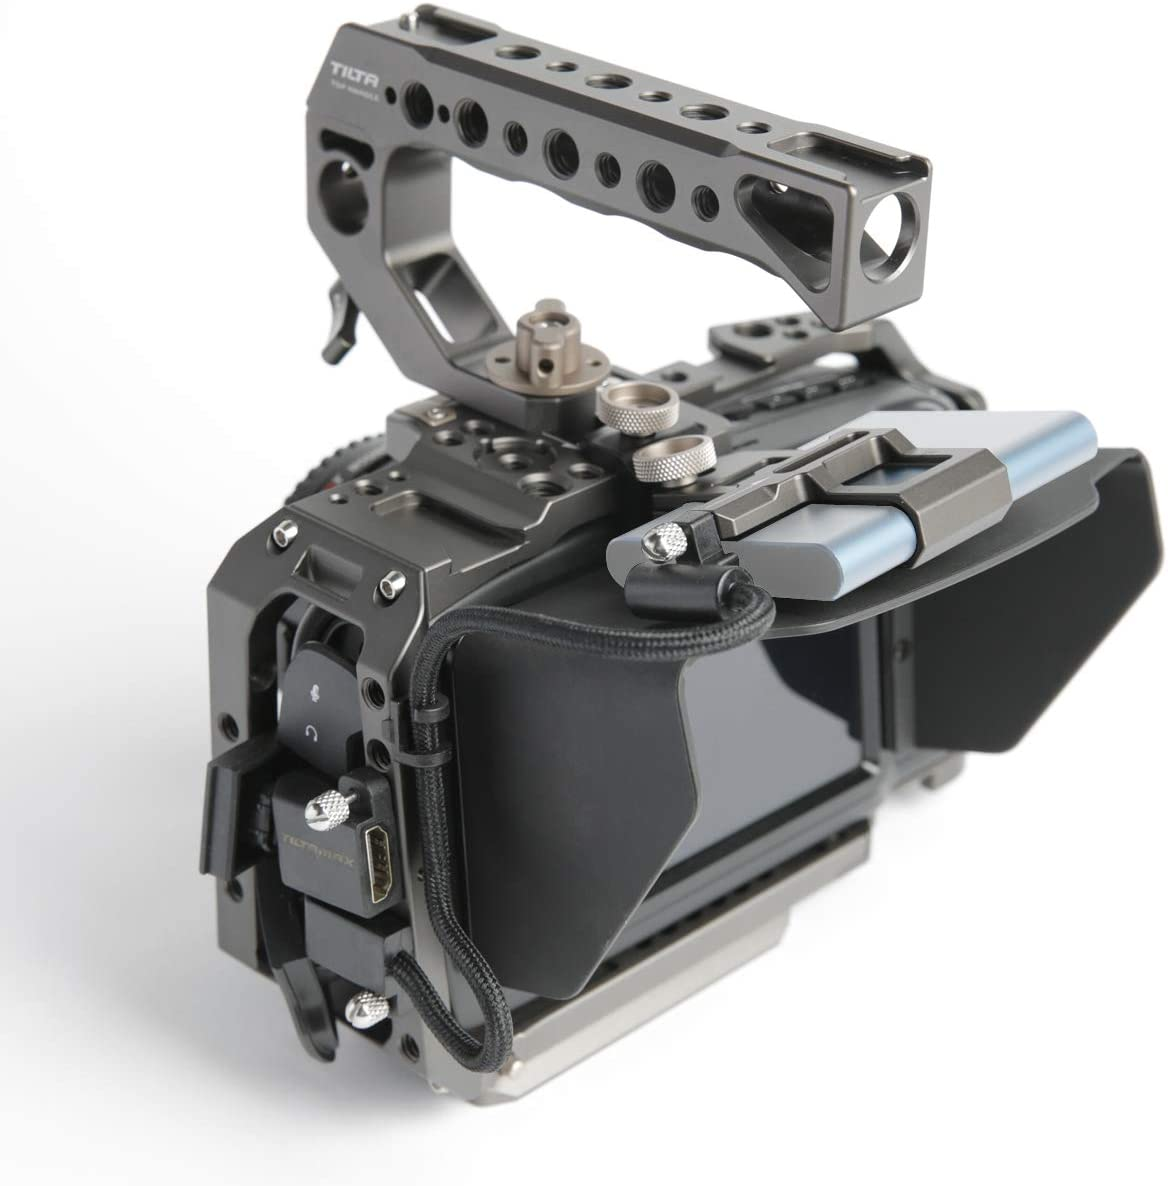 6K BMPCC 6K Camera Cage Kit for Blackmagic Design Pocket Cinema Camera 4K MAGICRIG BMPCC 4K